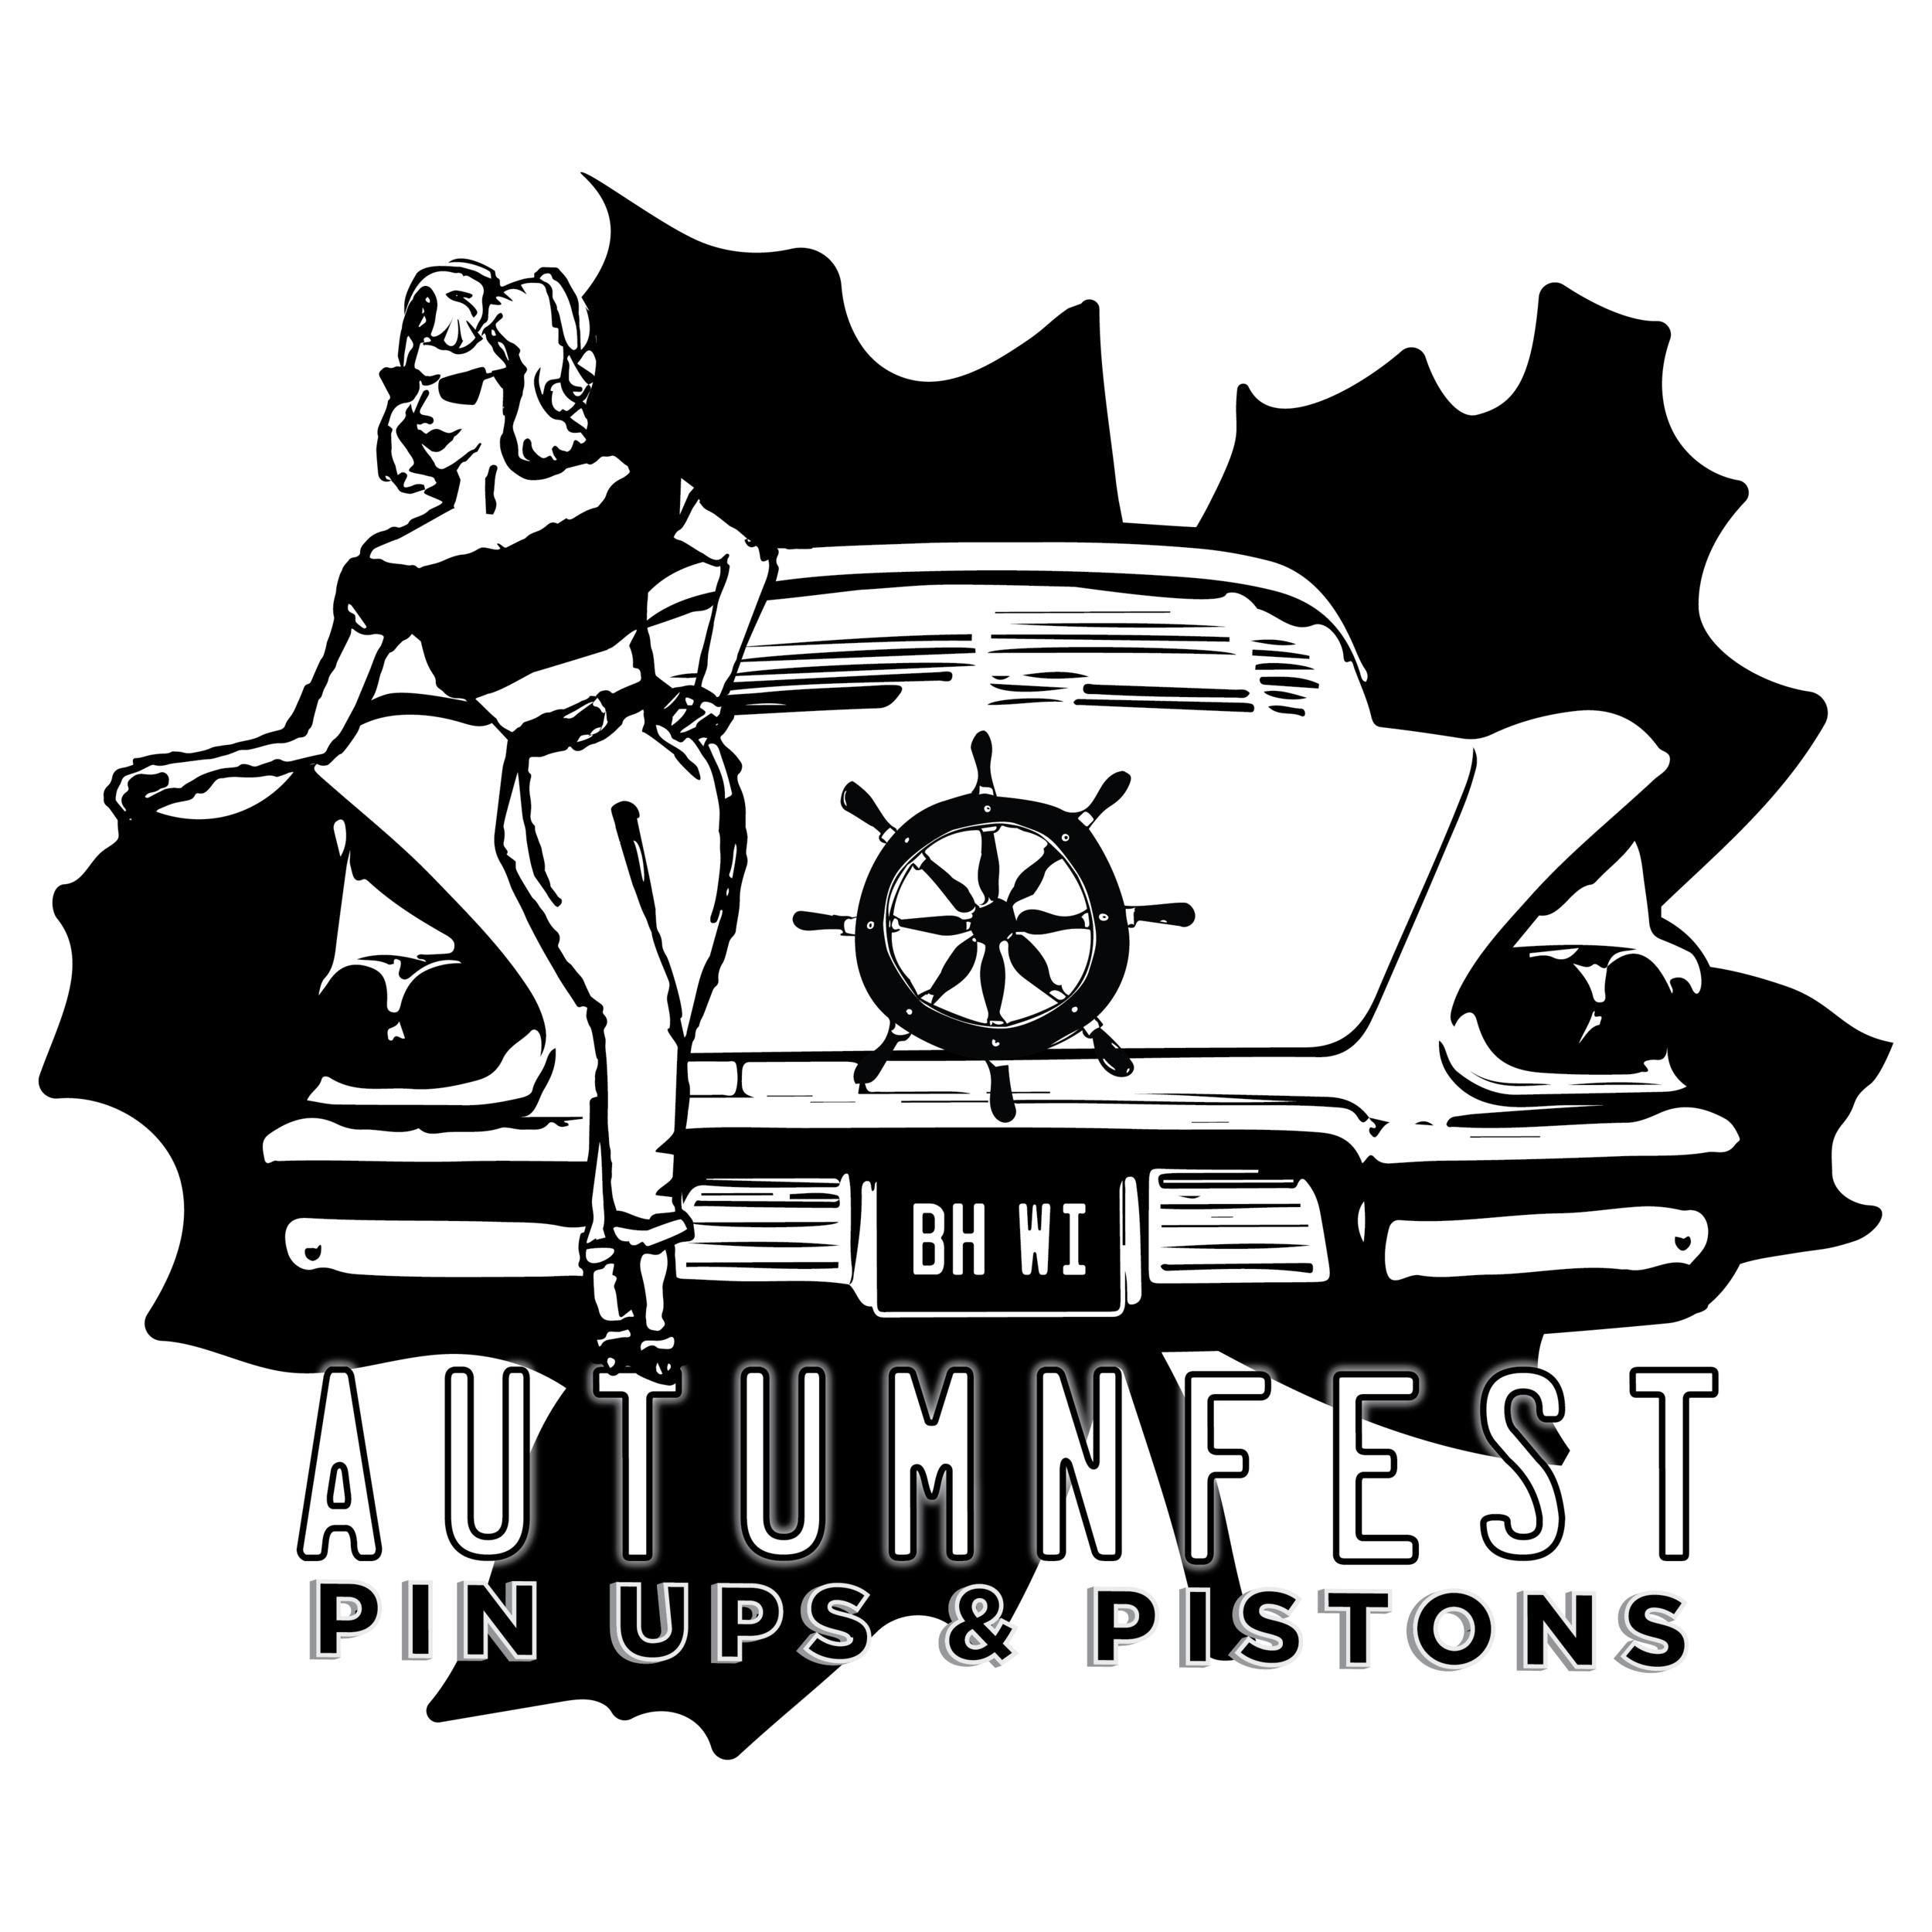 autumnfestpinup_BW-01.png